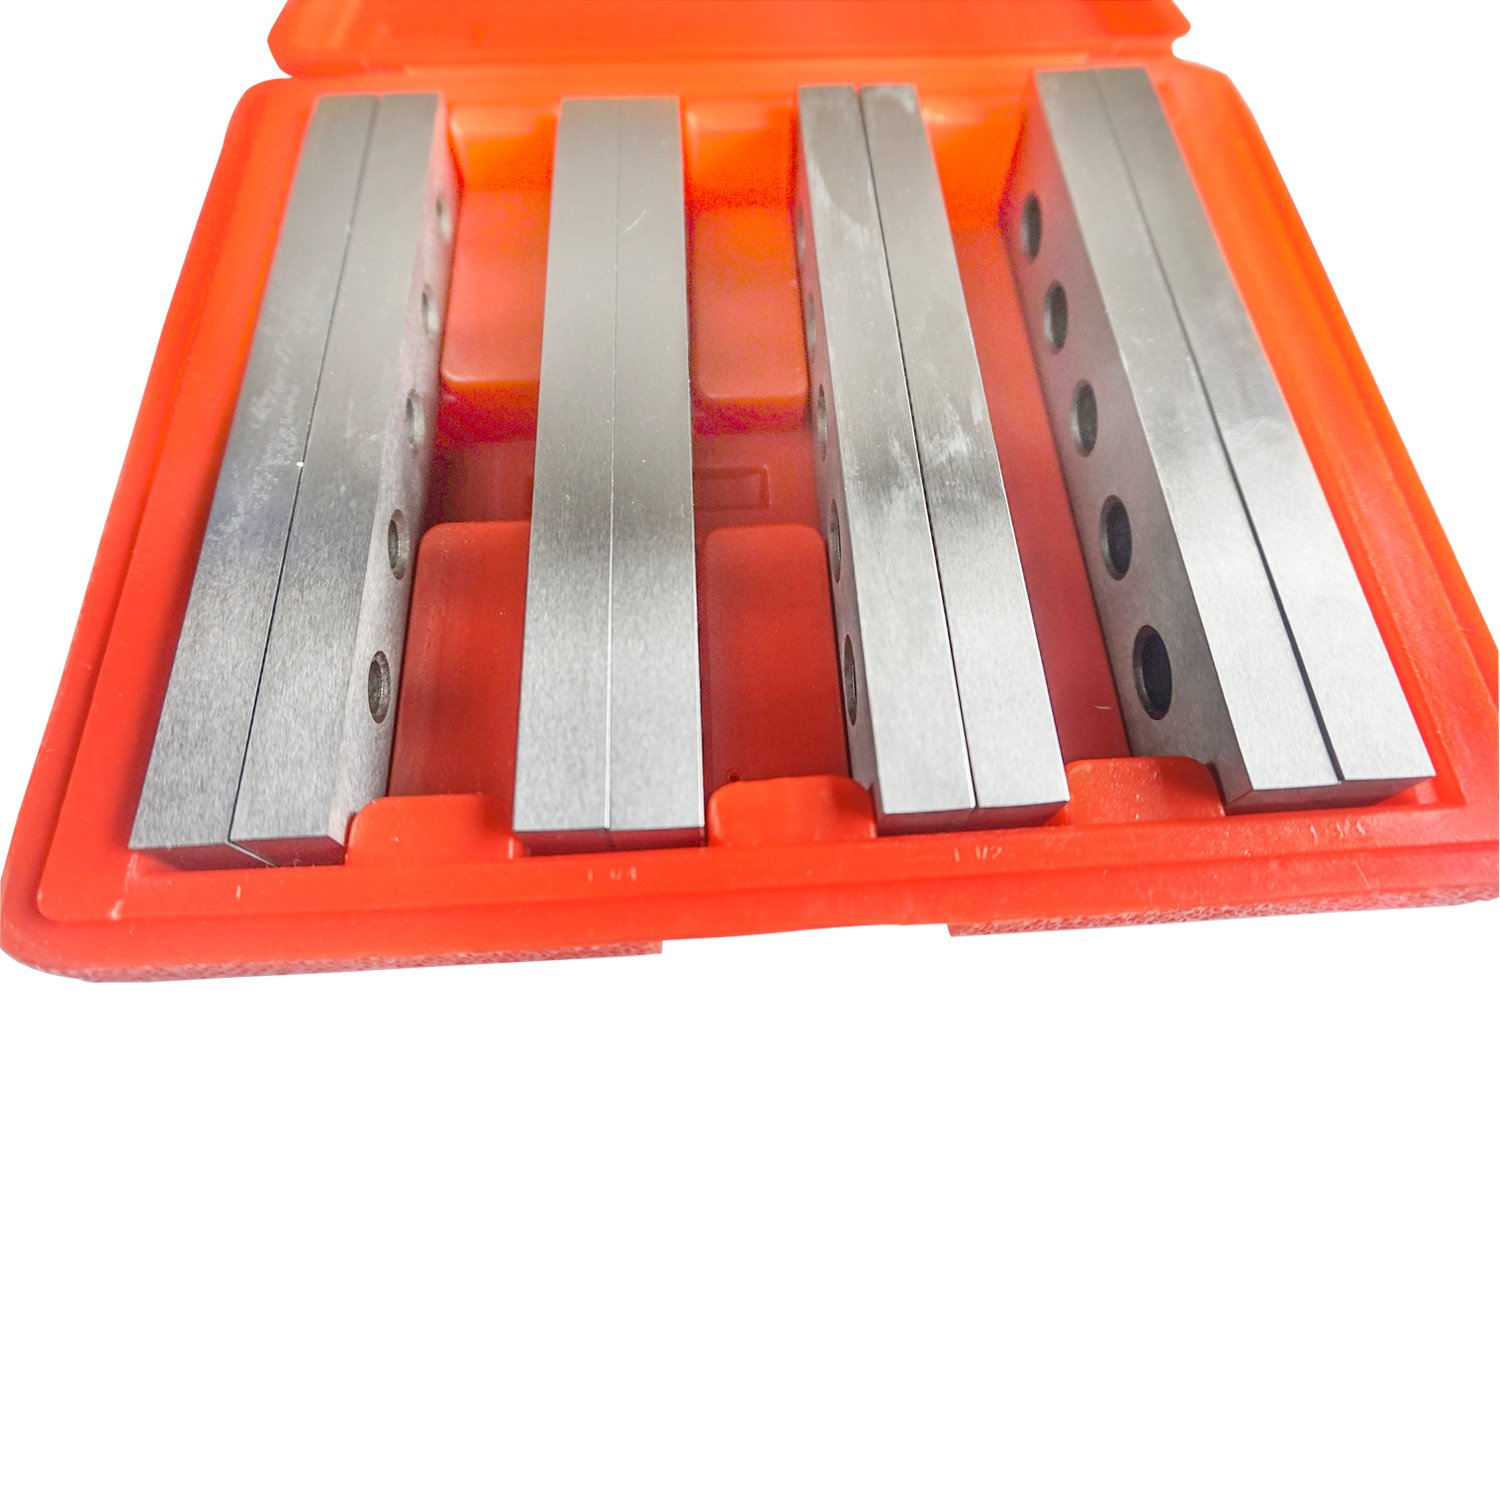 HFS (R) 4 pair 1/2'' STEEL PARALLEL SET 10 PAIR PARALLELS .0002'' HARDENED NEW by HFS (Image #1)